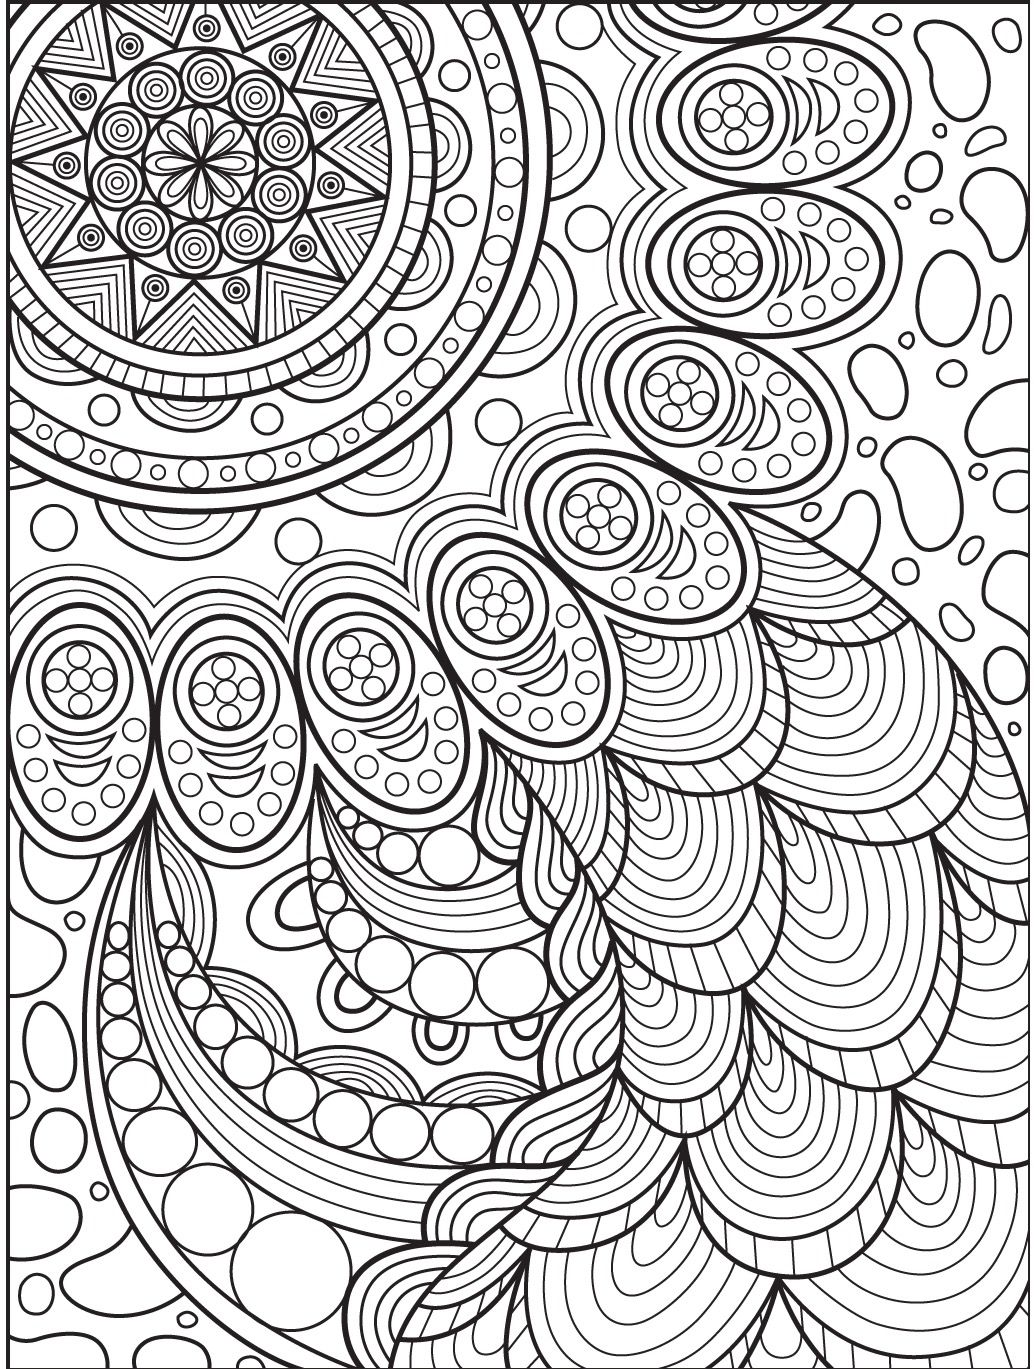 Exceptional image pertaining to printable adult coloring pages abstract